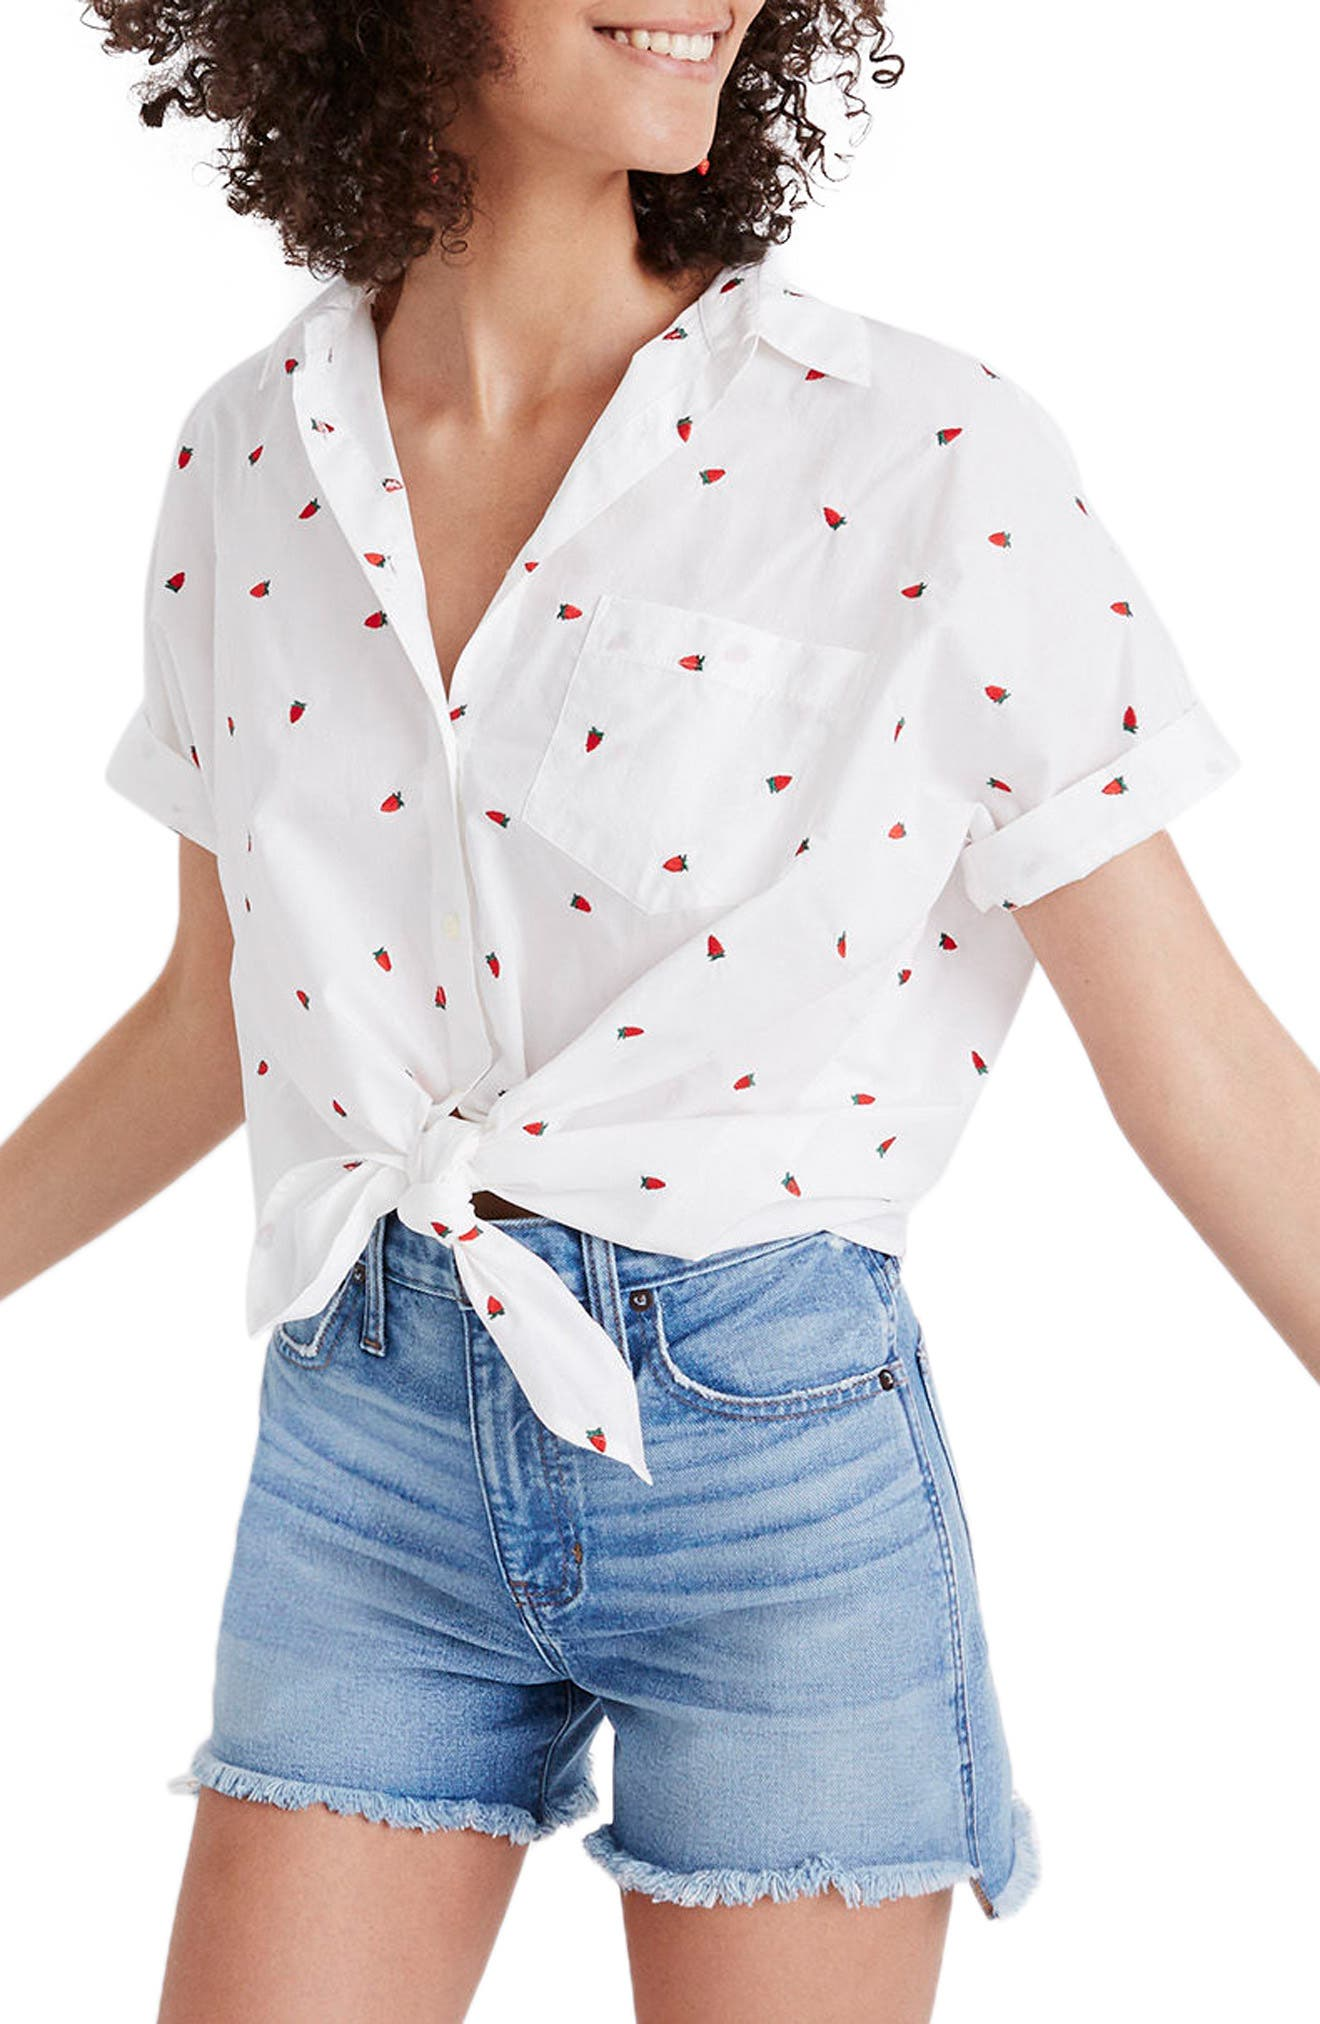 Madewell Strawberry Embroidered Tie Front Shirt